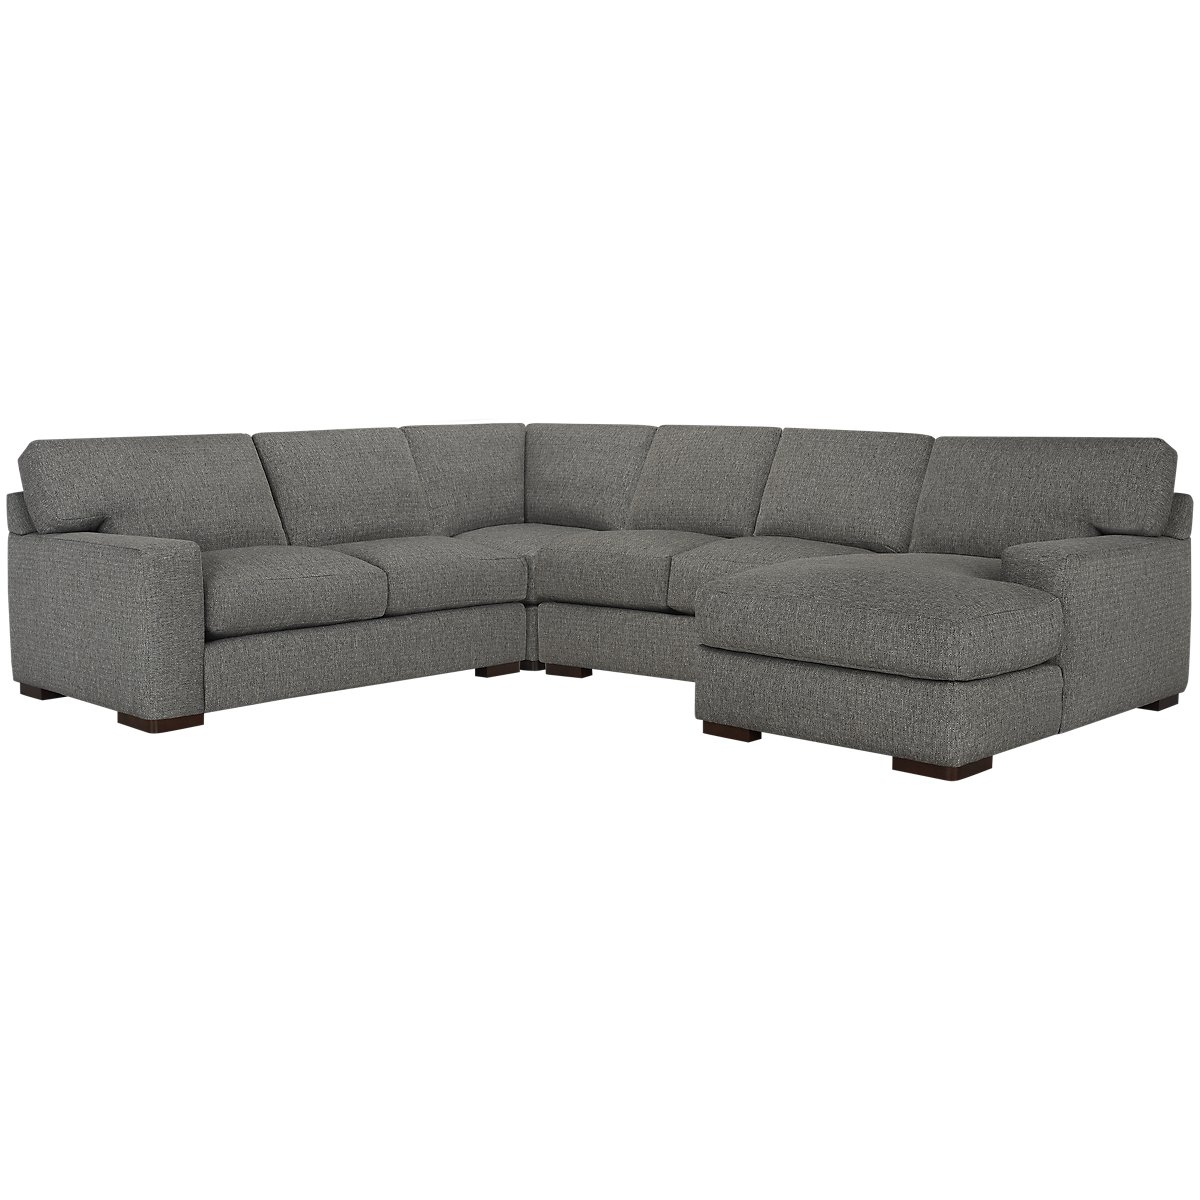 Veronica Gray Fabric Medium Right Chaise Sectional